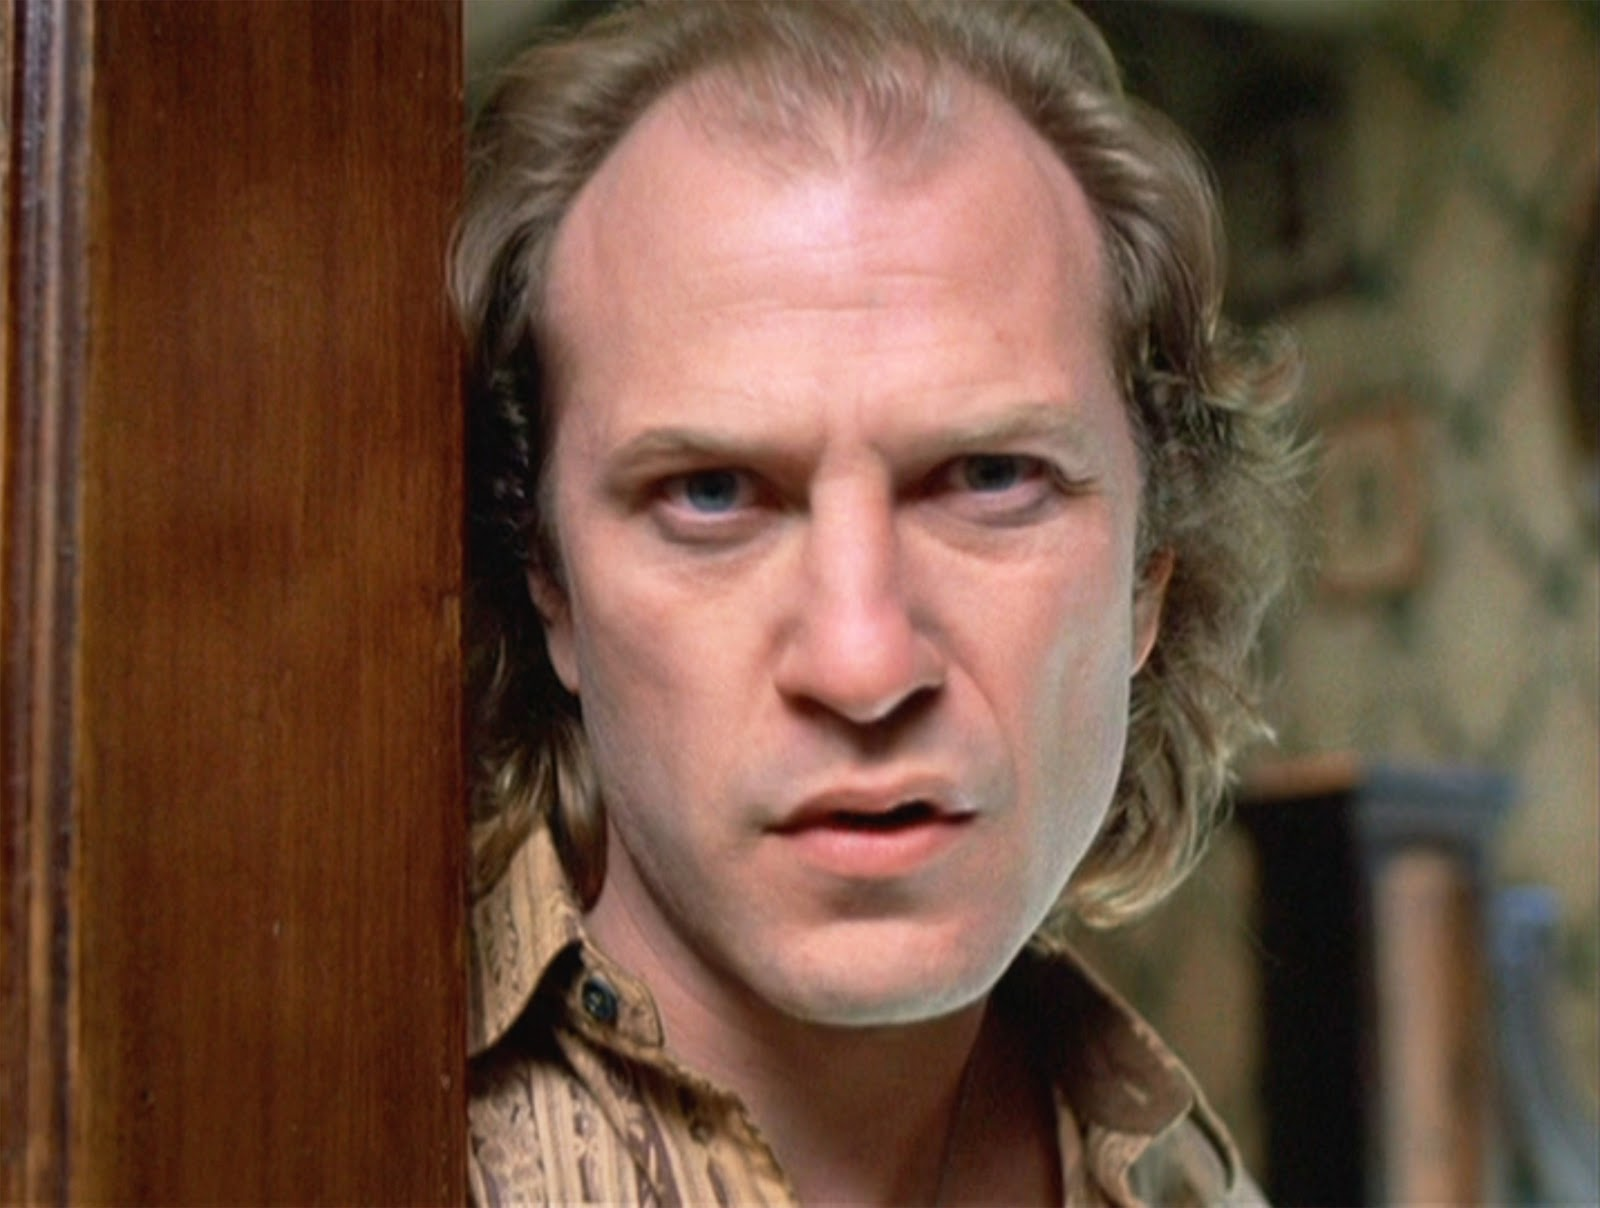 the silence of the lambs american film maker jonathan ted levine as buffalo bill in the silence of the lambs